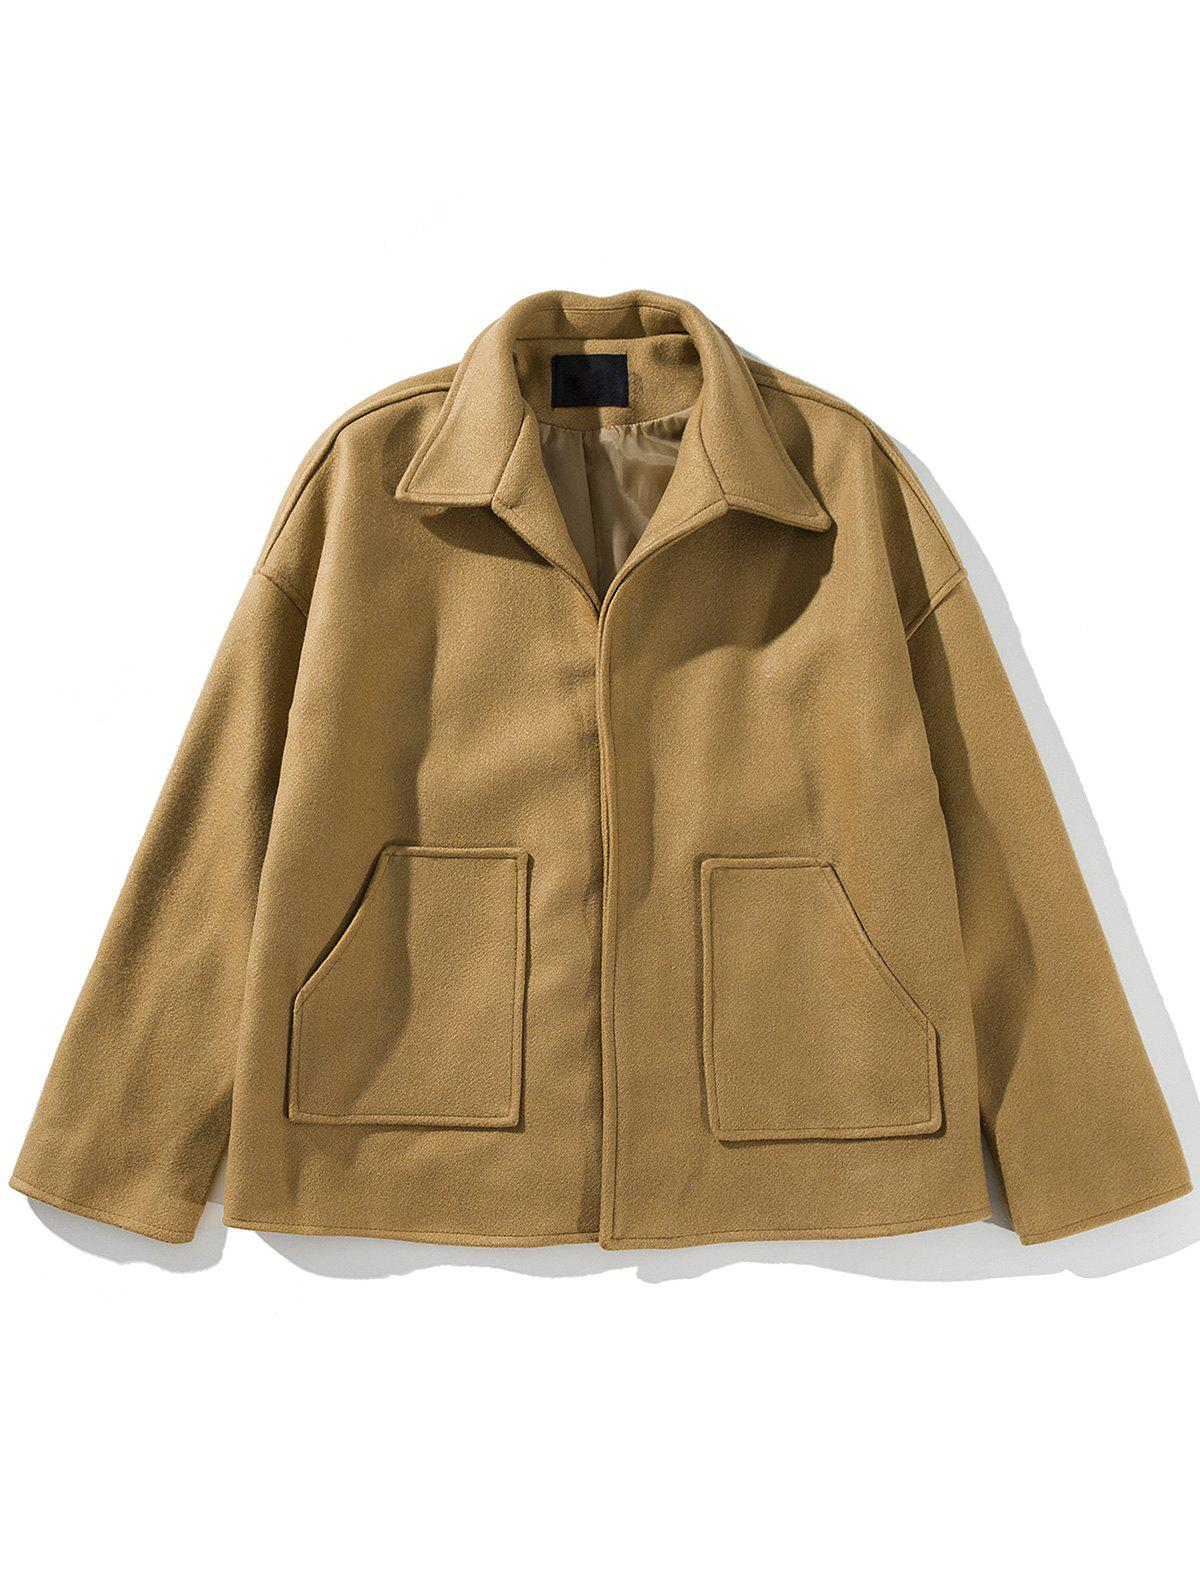 Cloak Pockets Woolen Jacket - KHAKI 2XL